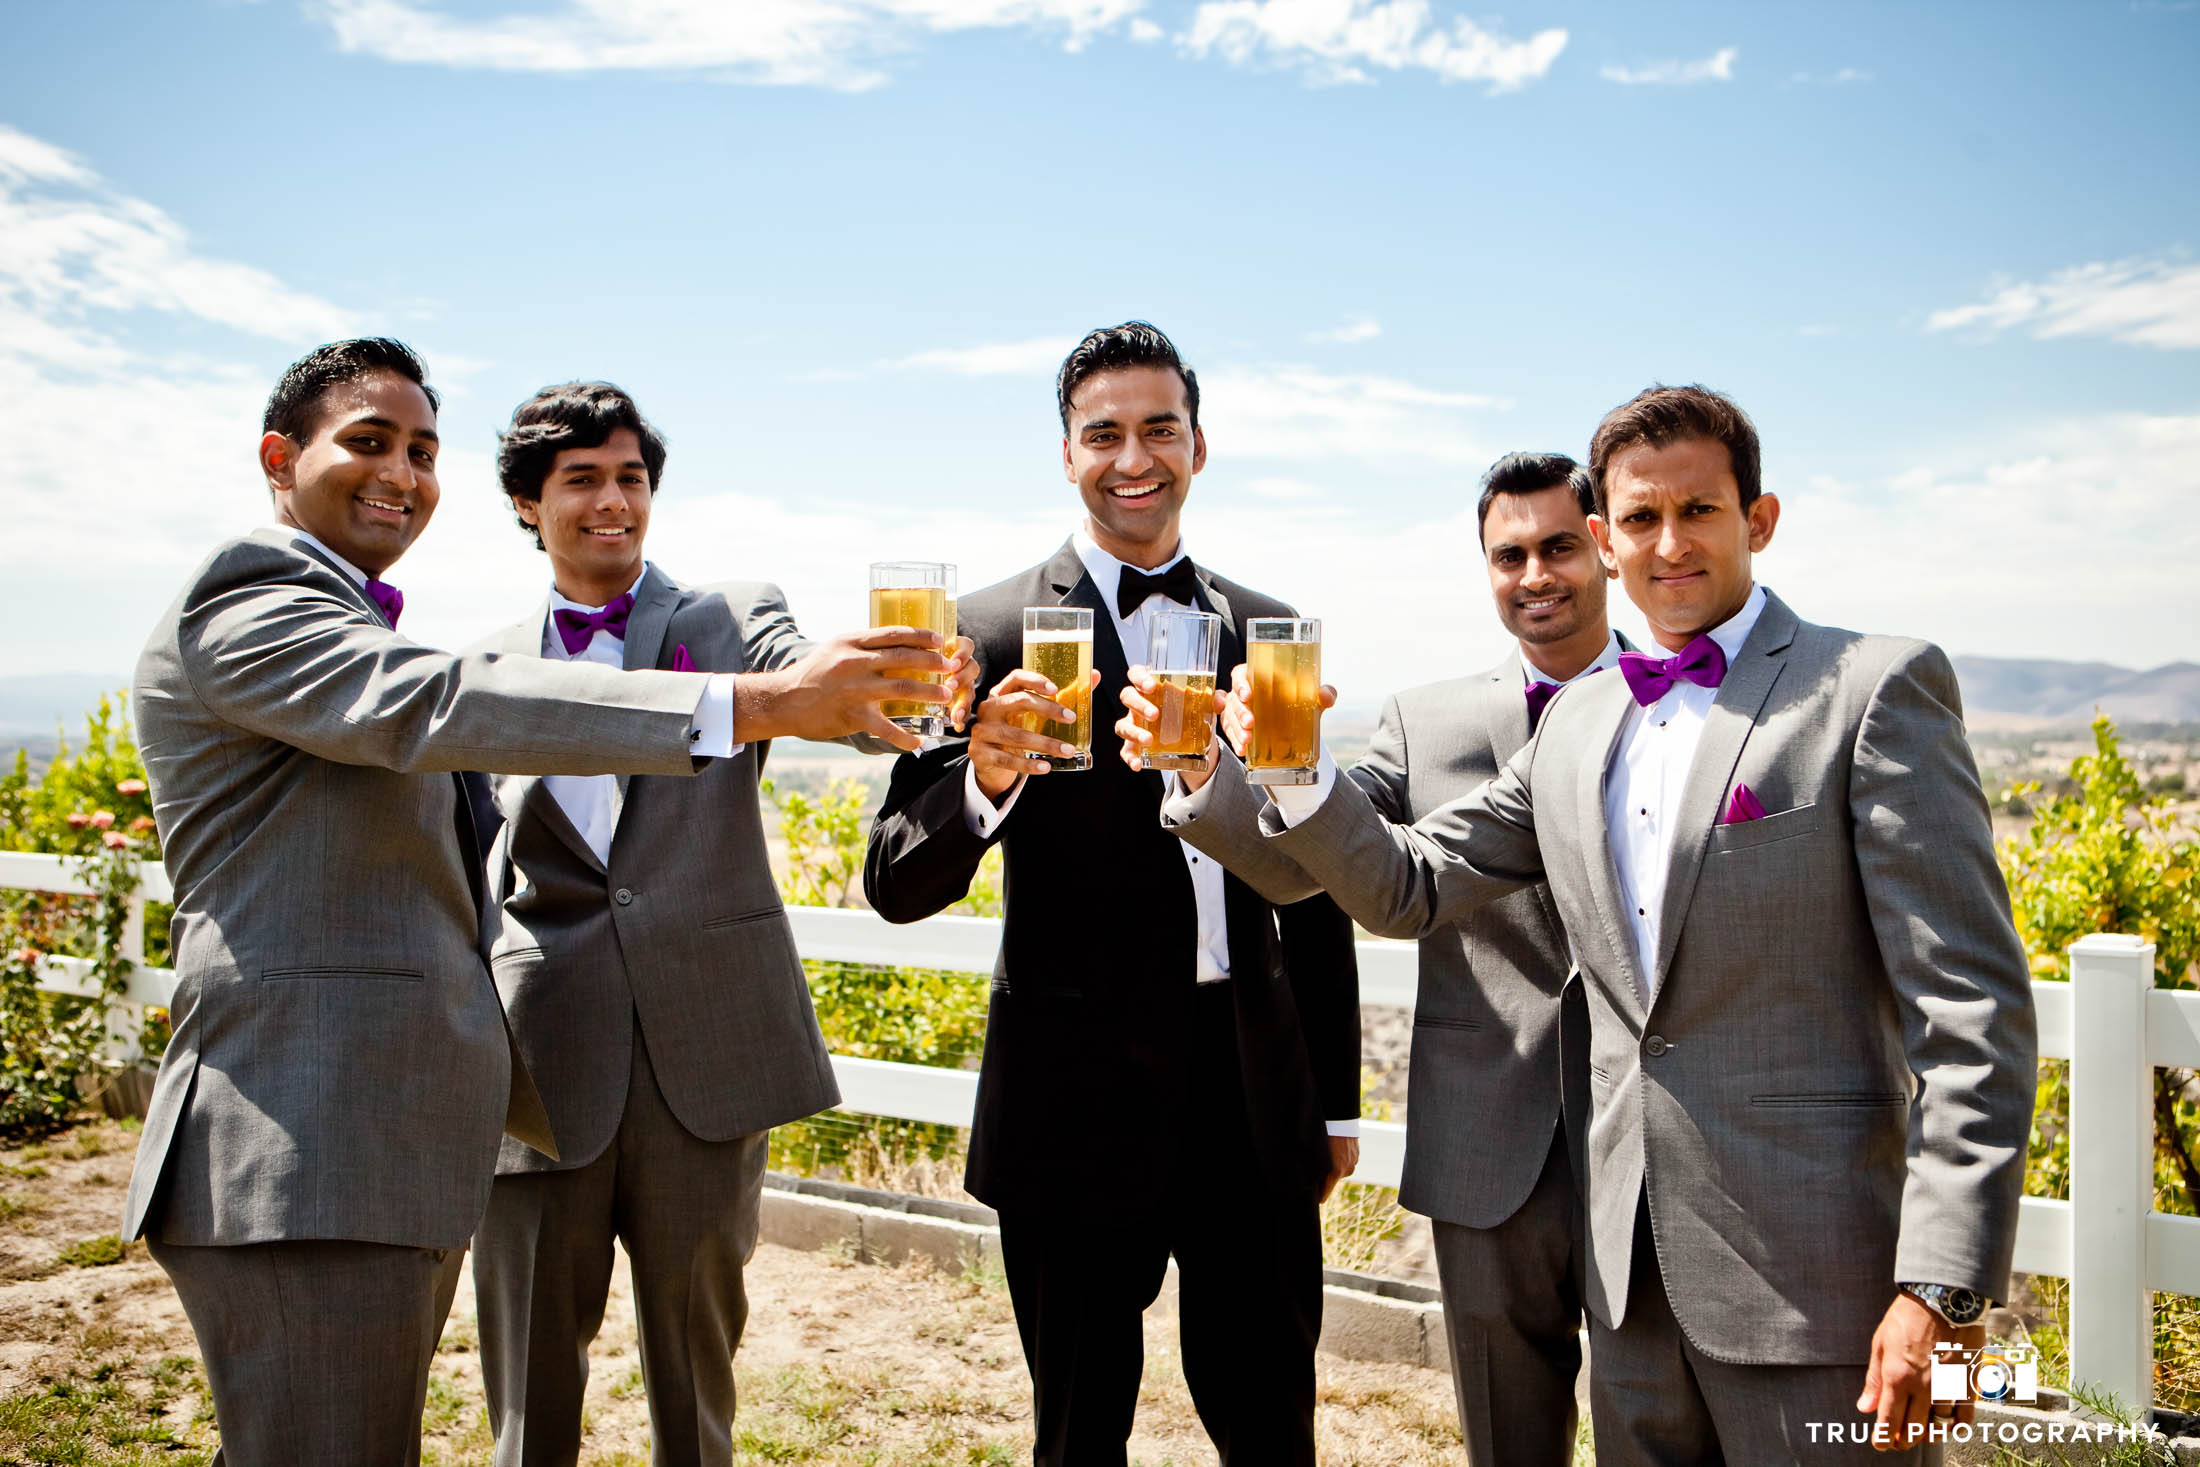 Groomsmen toast with beers